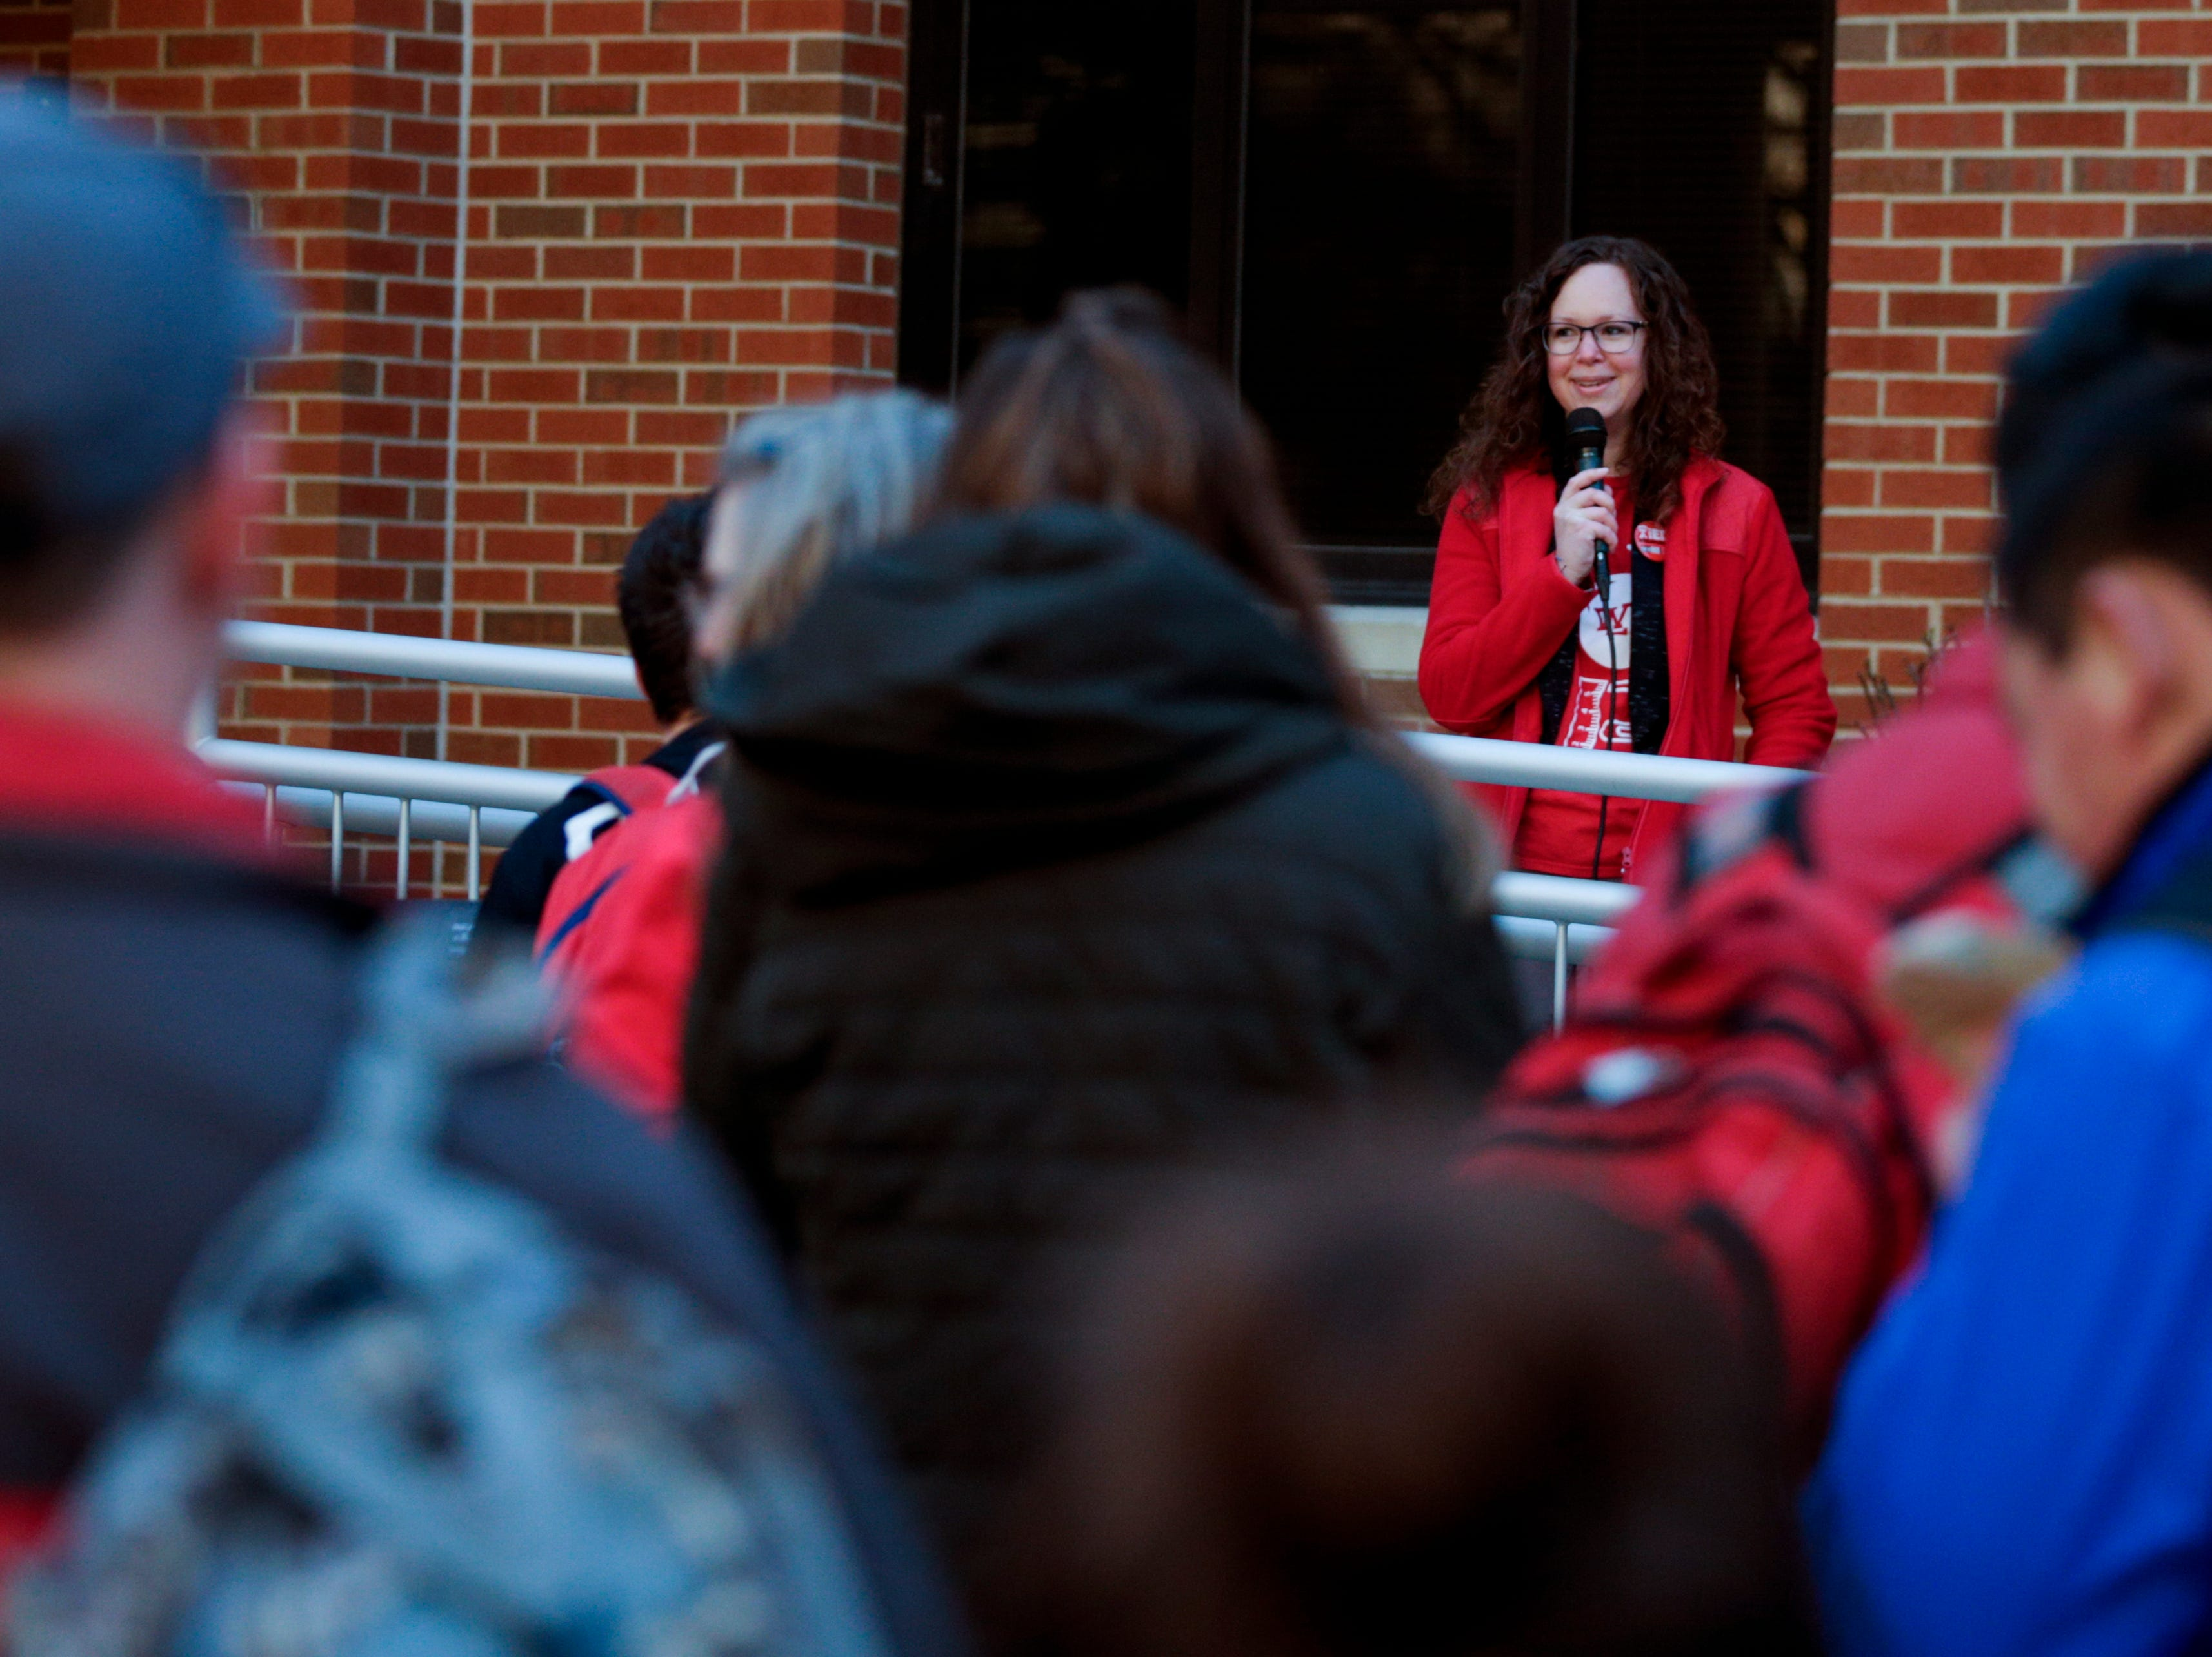 Andi Hipsher, West Lafayette Educators Association co-president, speaks during a gathering of teachers to demand teacher salary raises, Wednesday, April 10, 2019, at West Lafayette Jr./Sr. High School in West Lafayette. Greater Lafayette teachers and community members gathered outside schools before walking in to demand teacher salary raises.(Nikos Frazier   Journal & Courier)